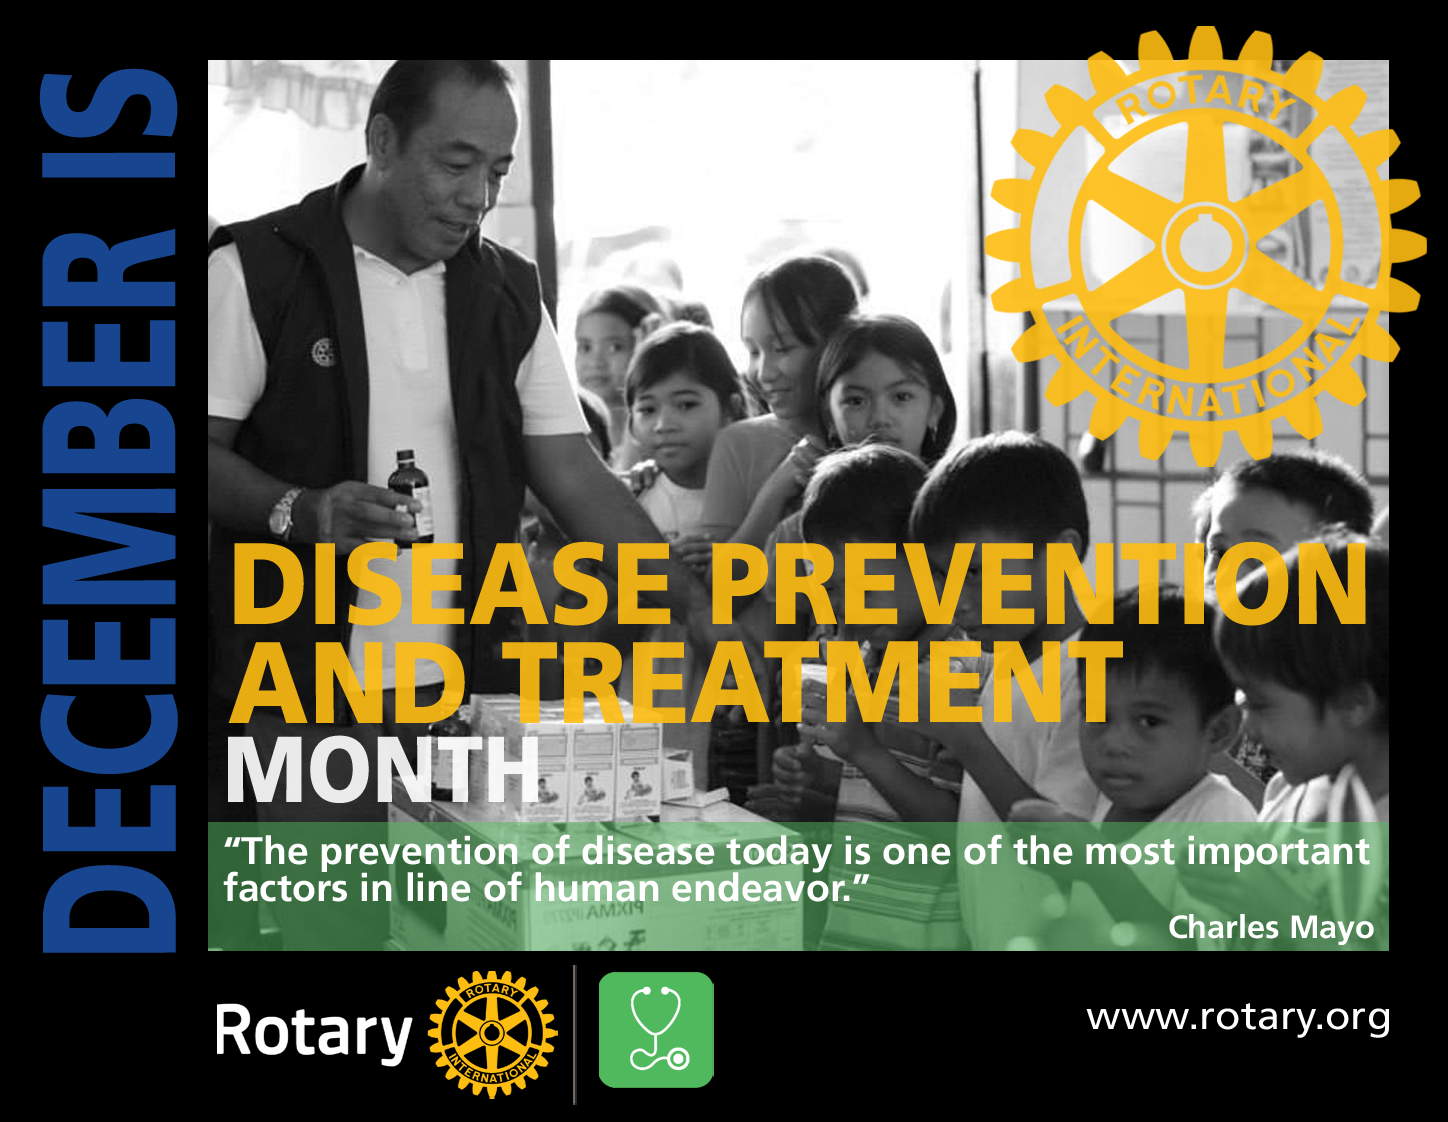 Rotary Disease Prevention and Treatment Month